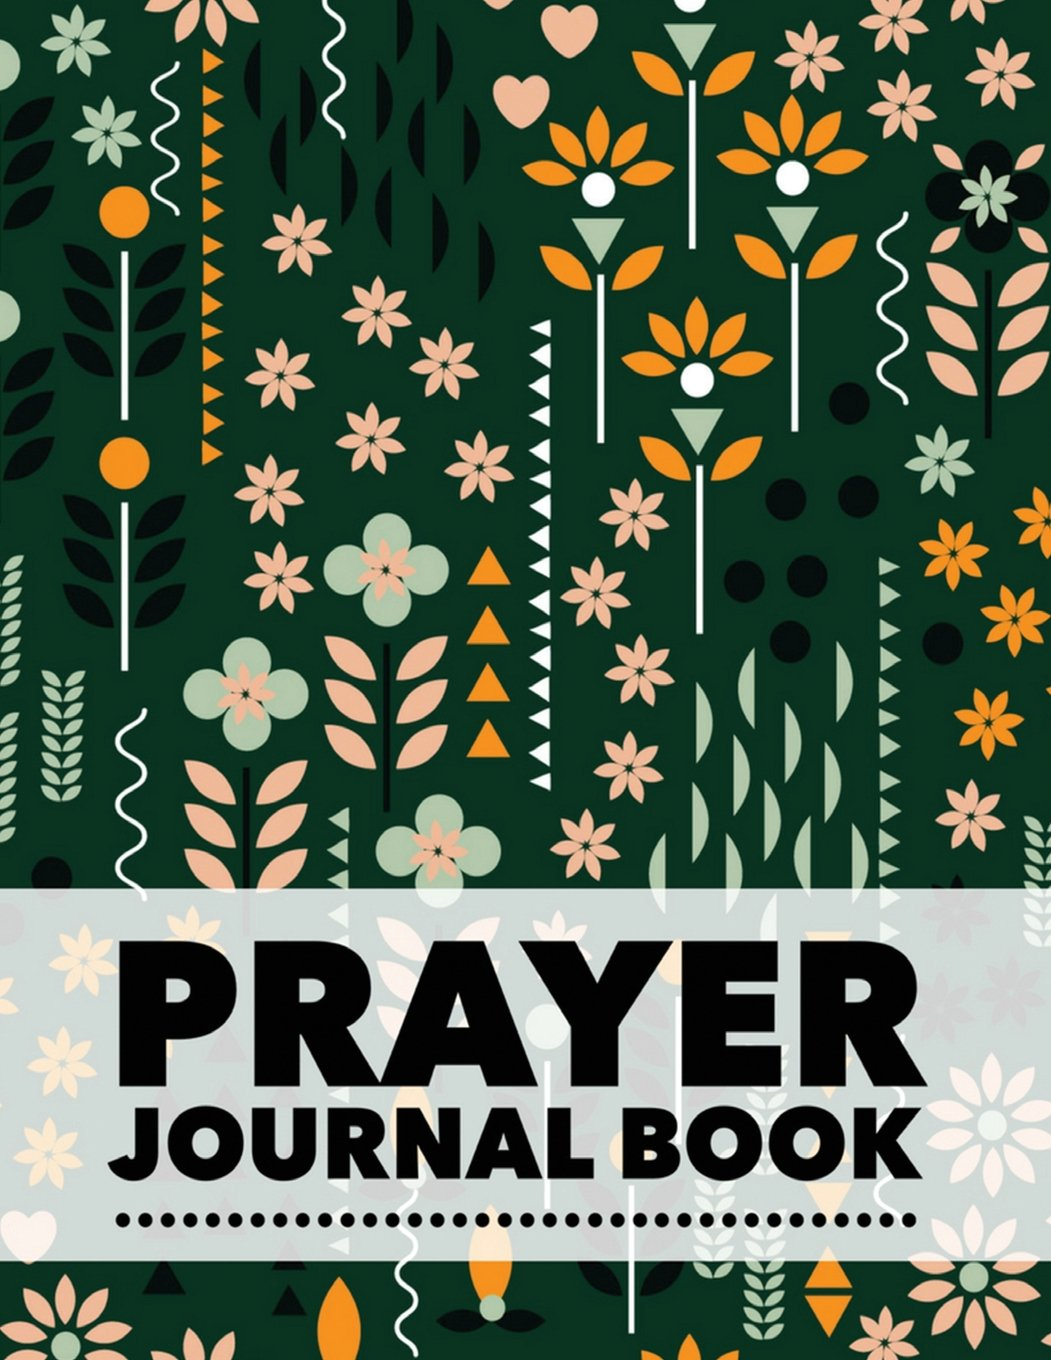 Download Prayer Journal Book: Floral Design Prayer Journal Book With Calendar 2018-2019 ,Dialy Guide for prayer , uplifting messages, Bible Journaling ... USA (Simple guide to journaling) (Volume 44) PDF